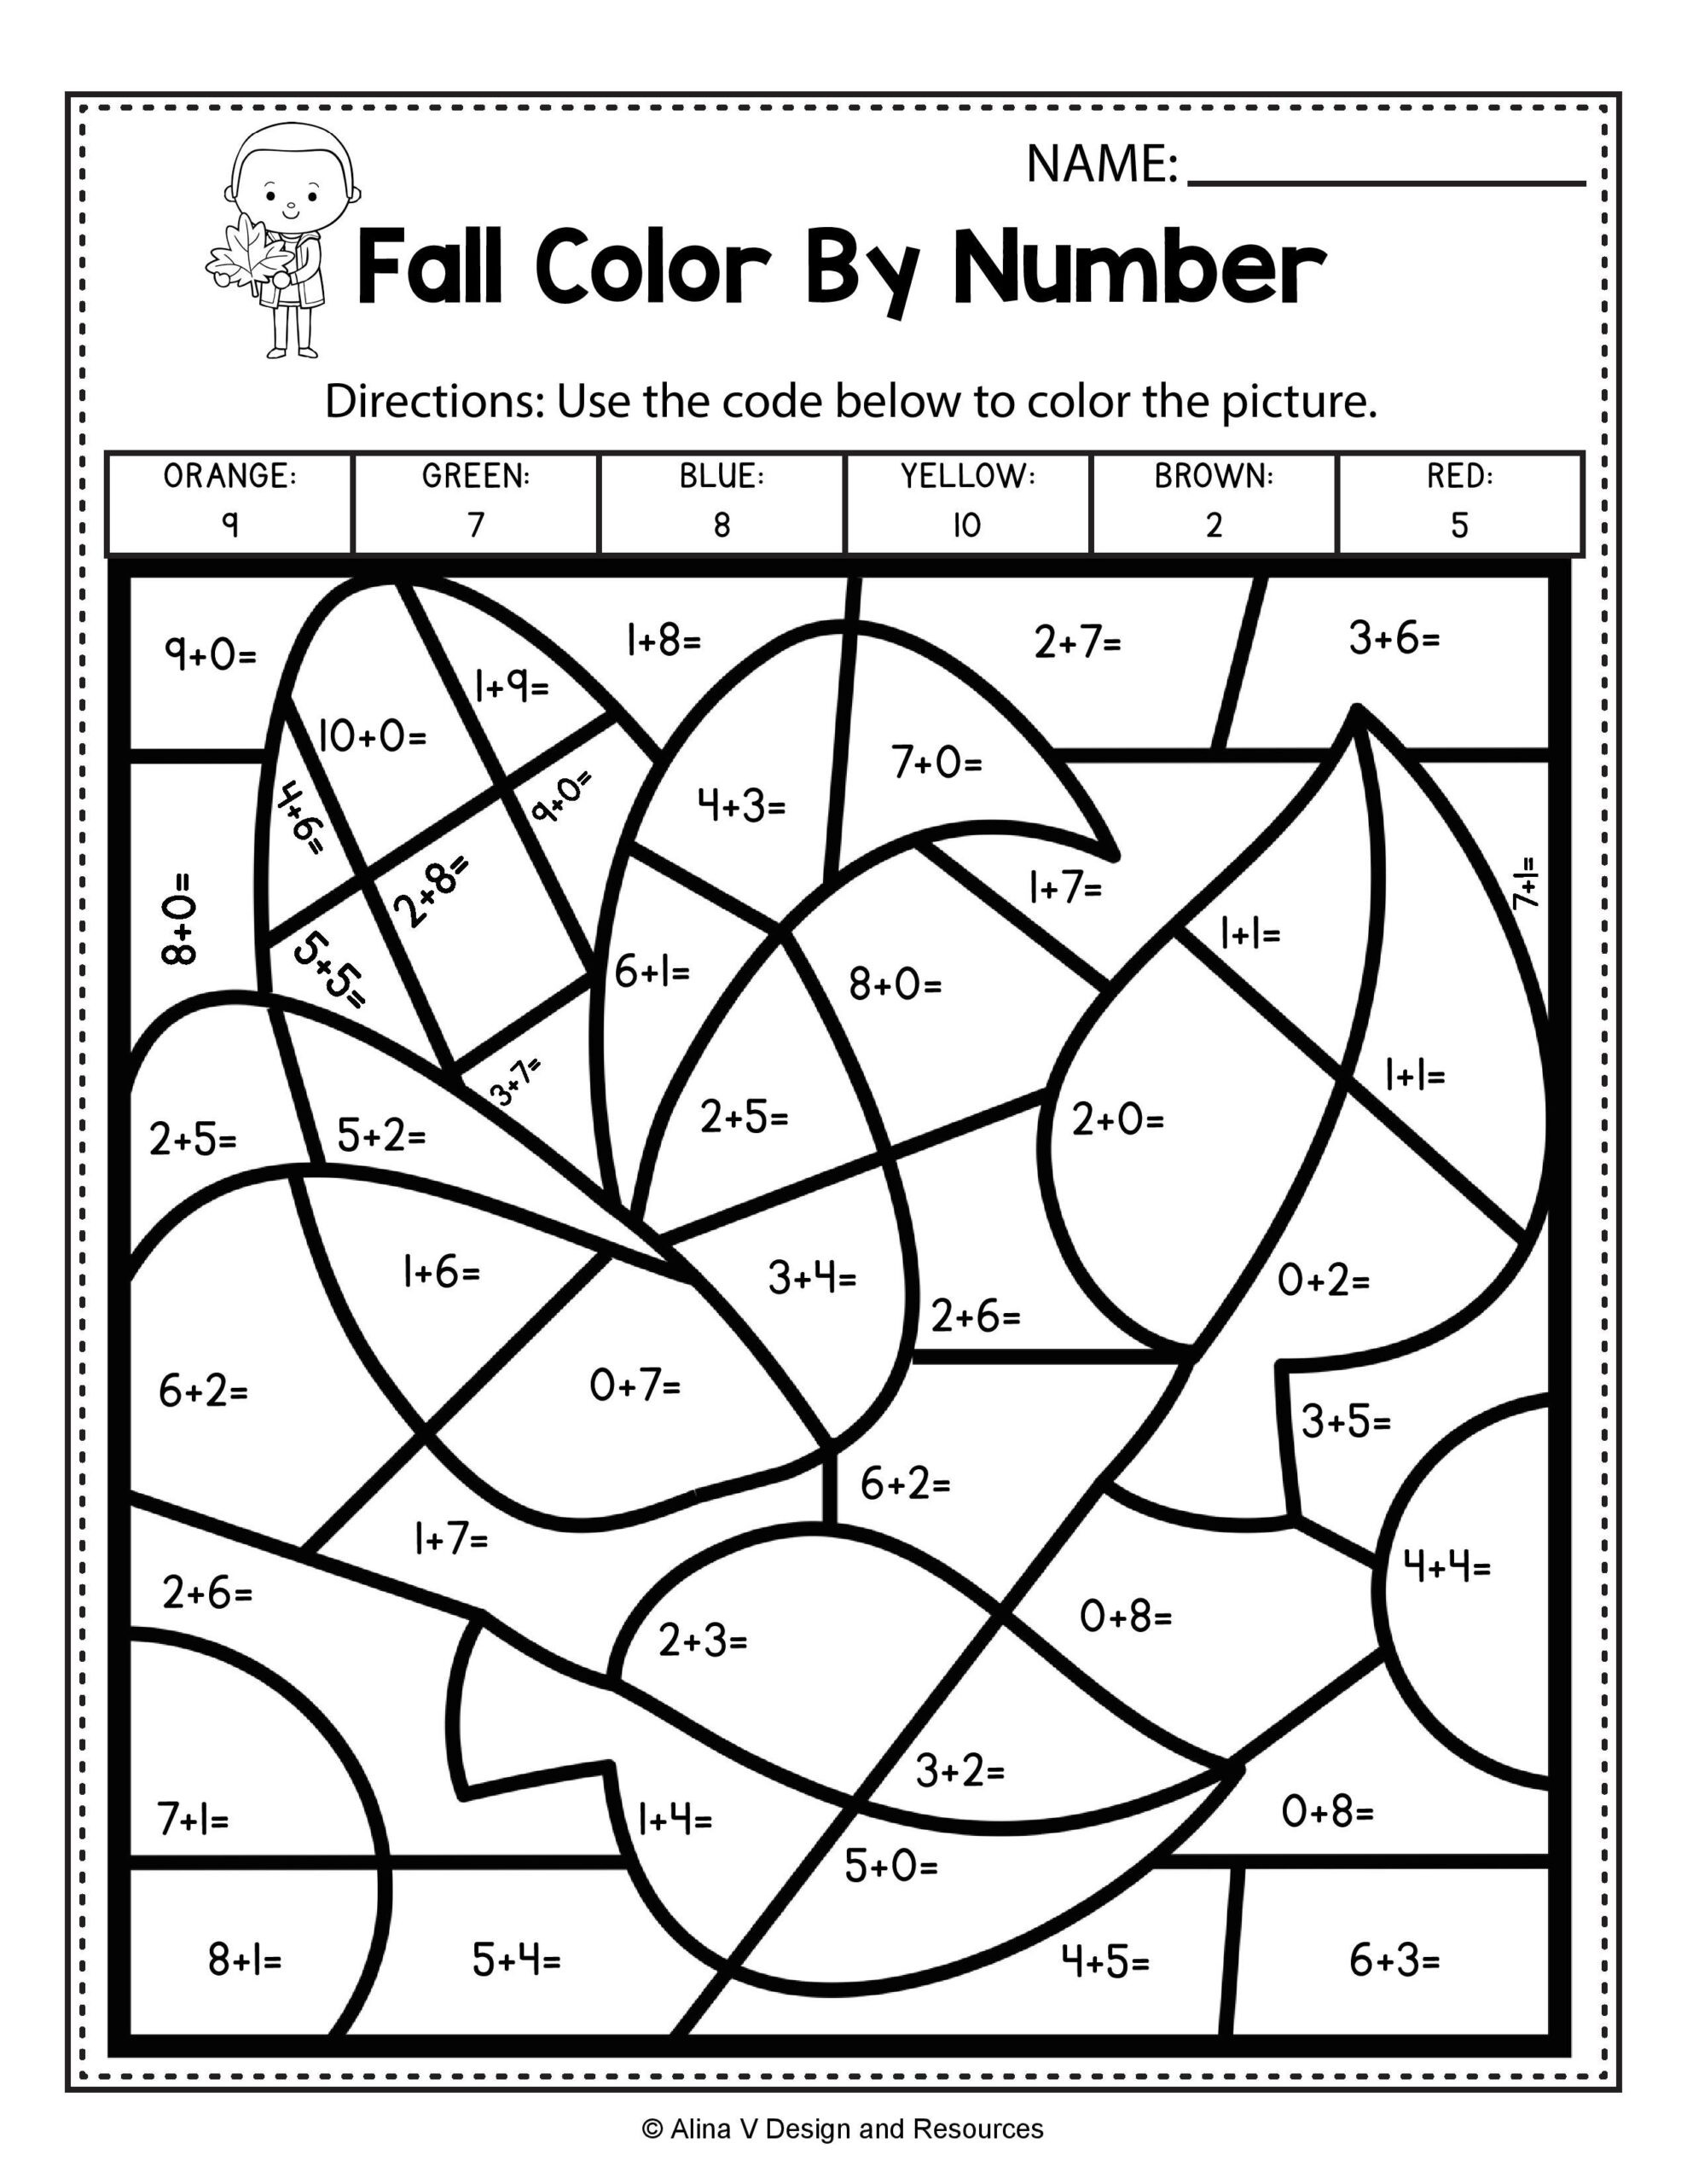 3rd Grade Art Worksheets Fun Sheets for 1st Grade Number Patterns Worksheets 3rd